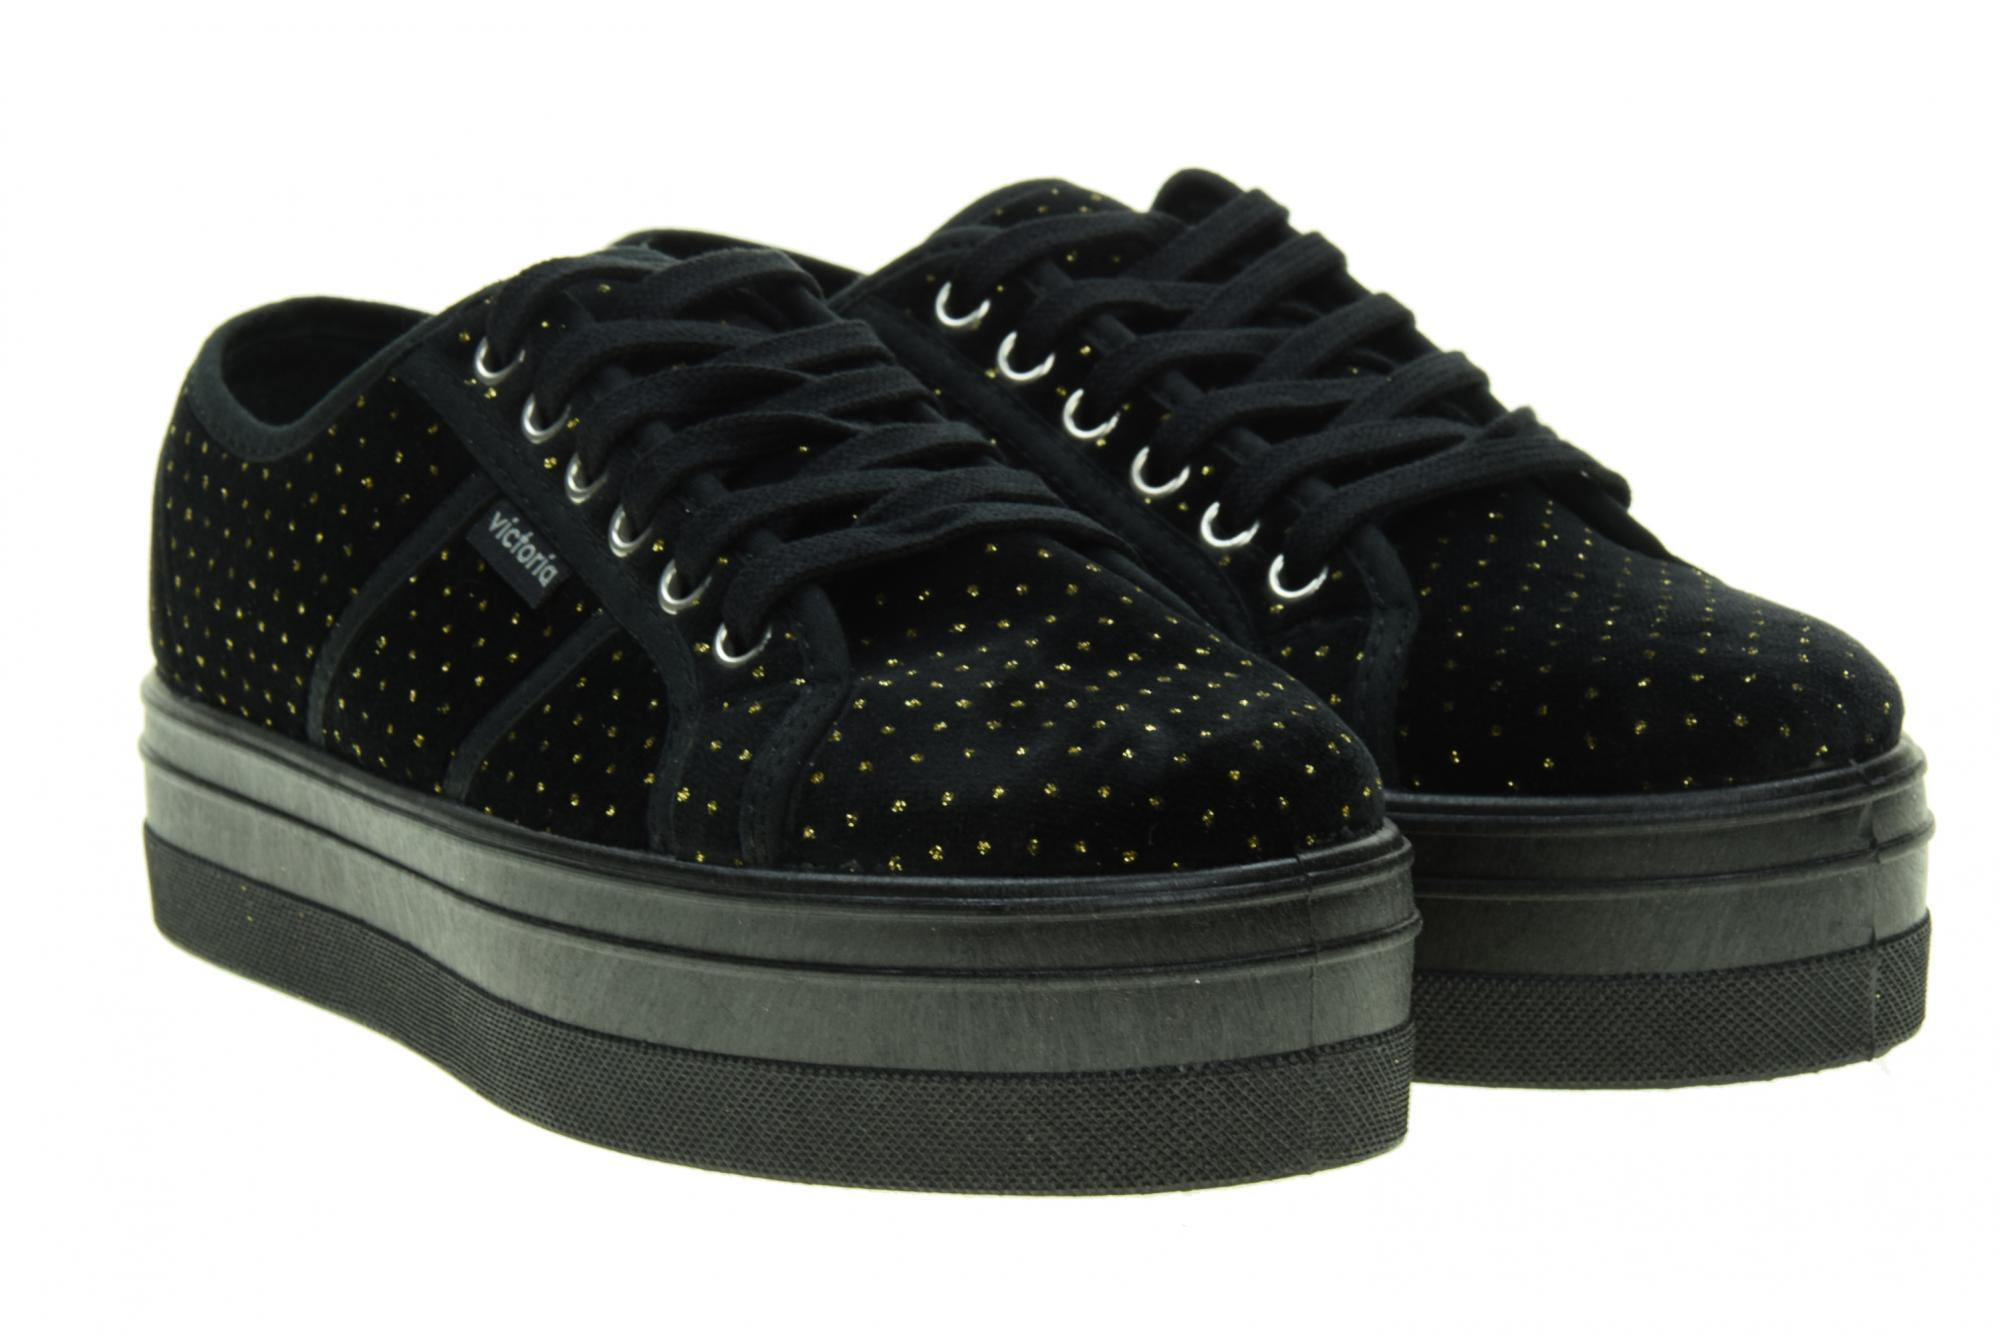 Victoria a17g Women Low Sneakers shoes with Platform 092101